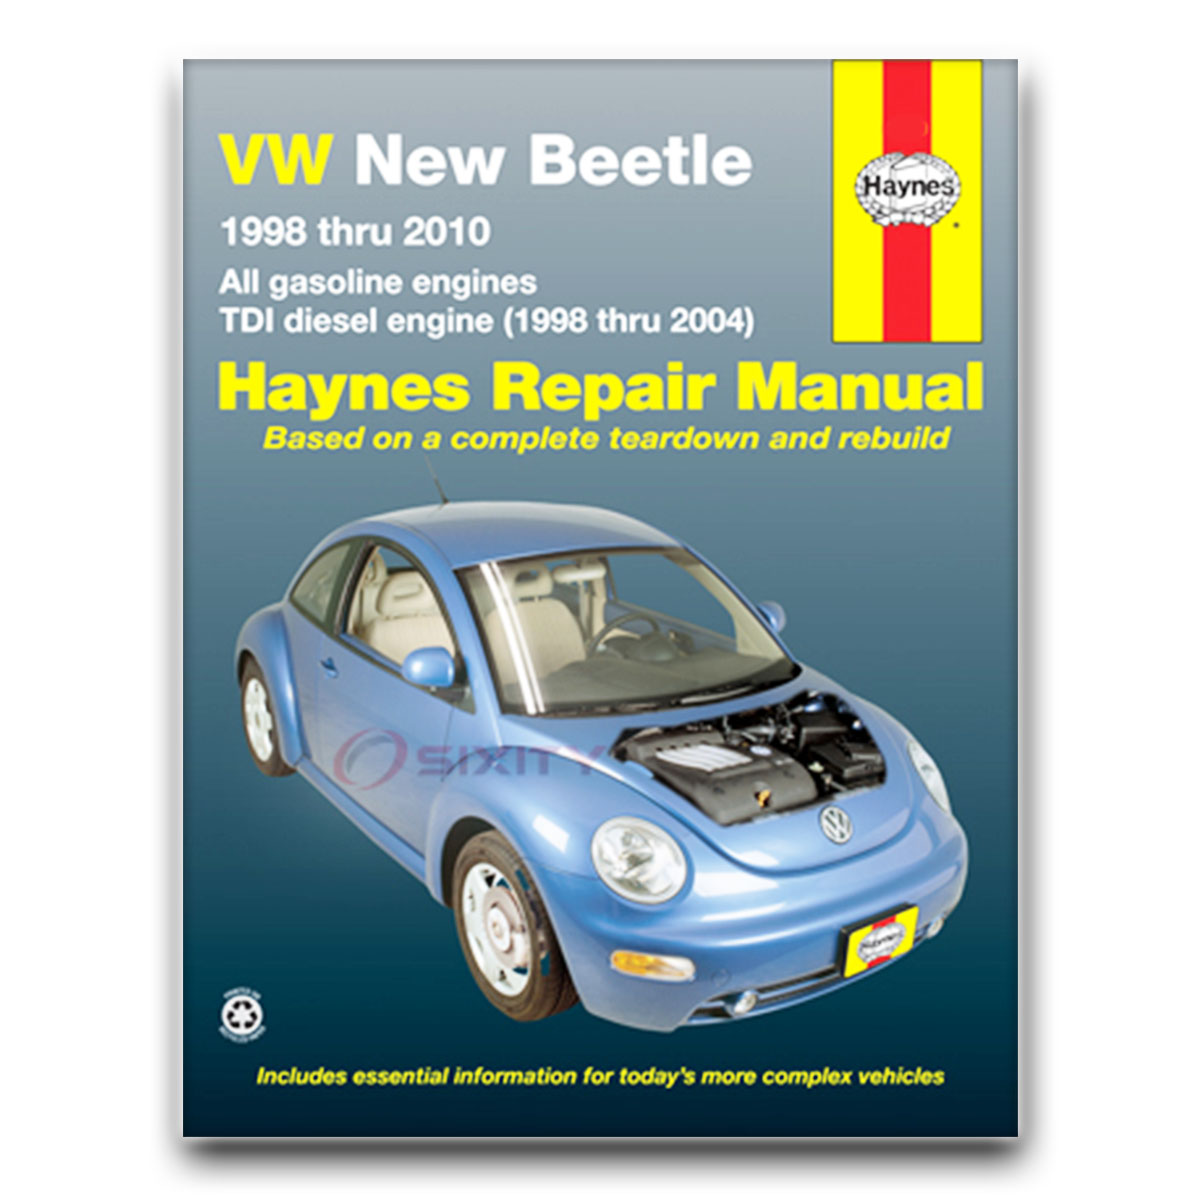 volkswagen vw beetle haynes repair manual base 2 5 glx sport turbo rh ebay com 2000 Volkswagen New Beetle 2001 Volkswagen New Beetle